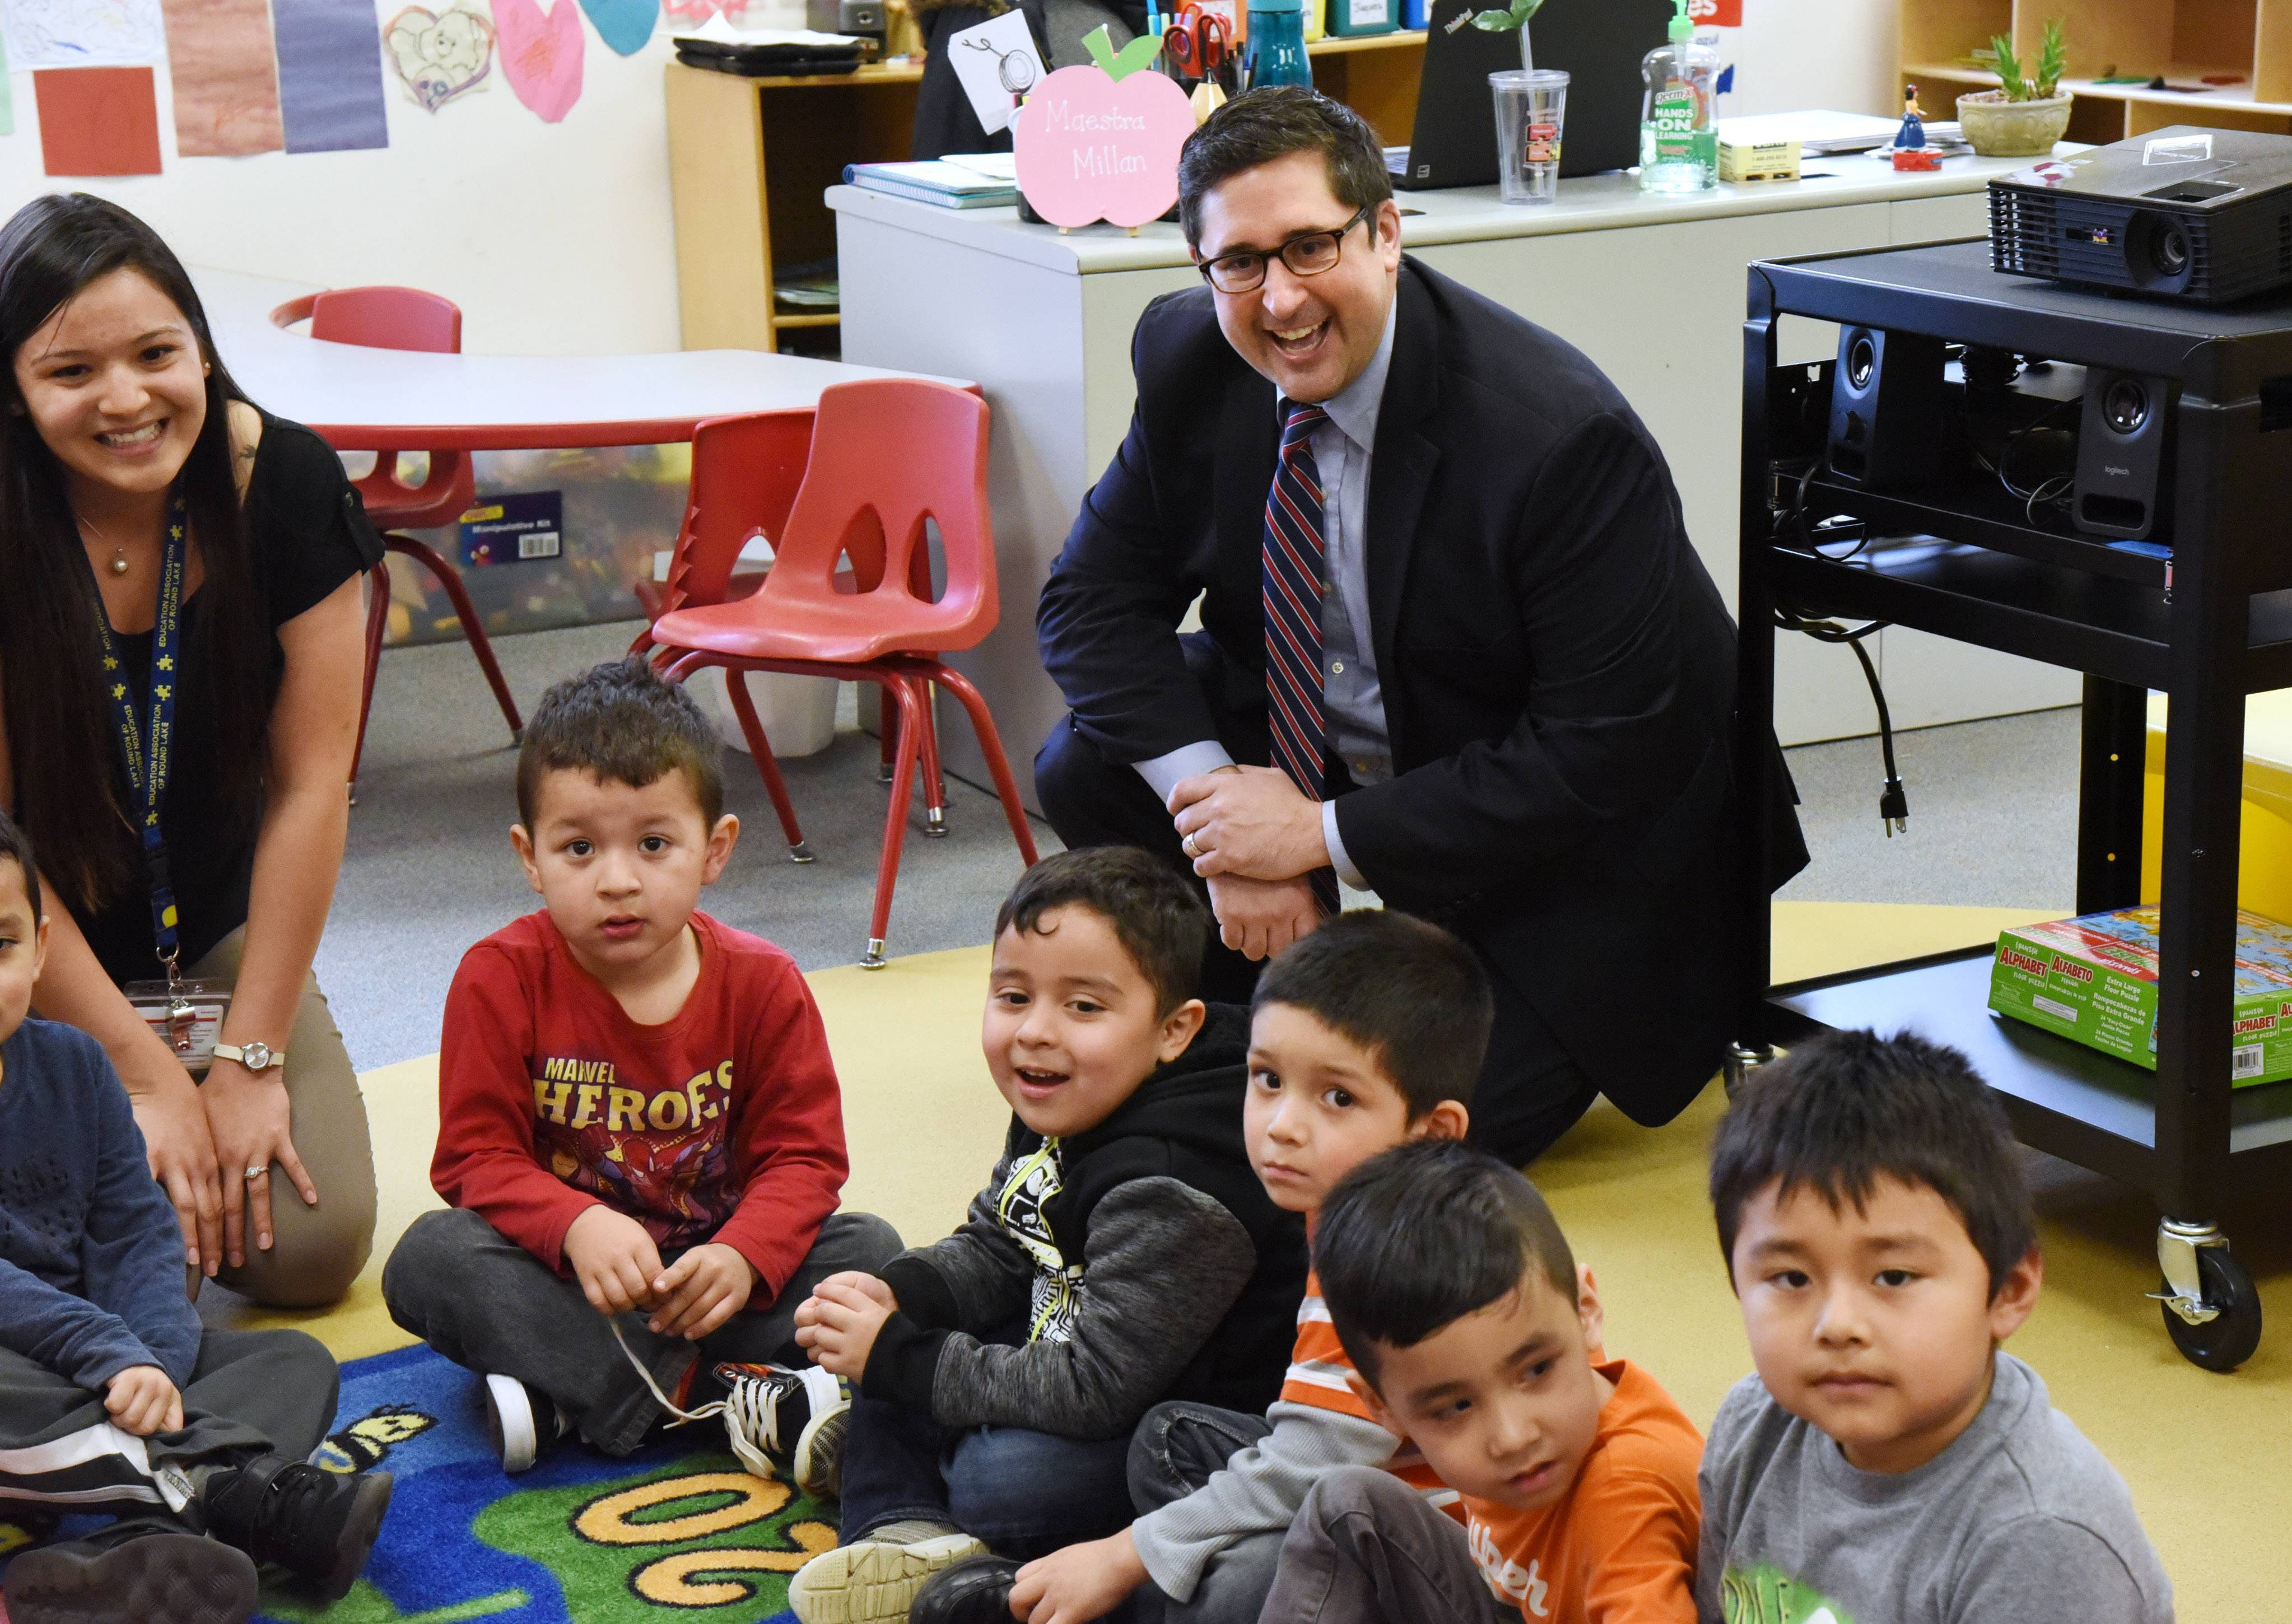 State lawmaker gets education funding feedback at Round Lake preschool